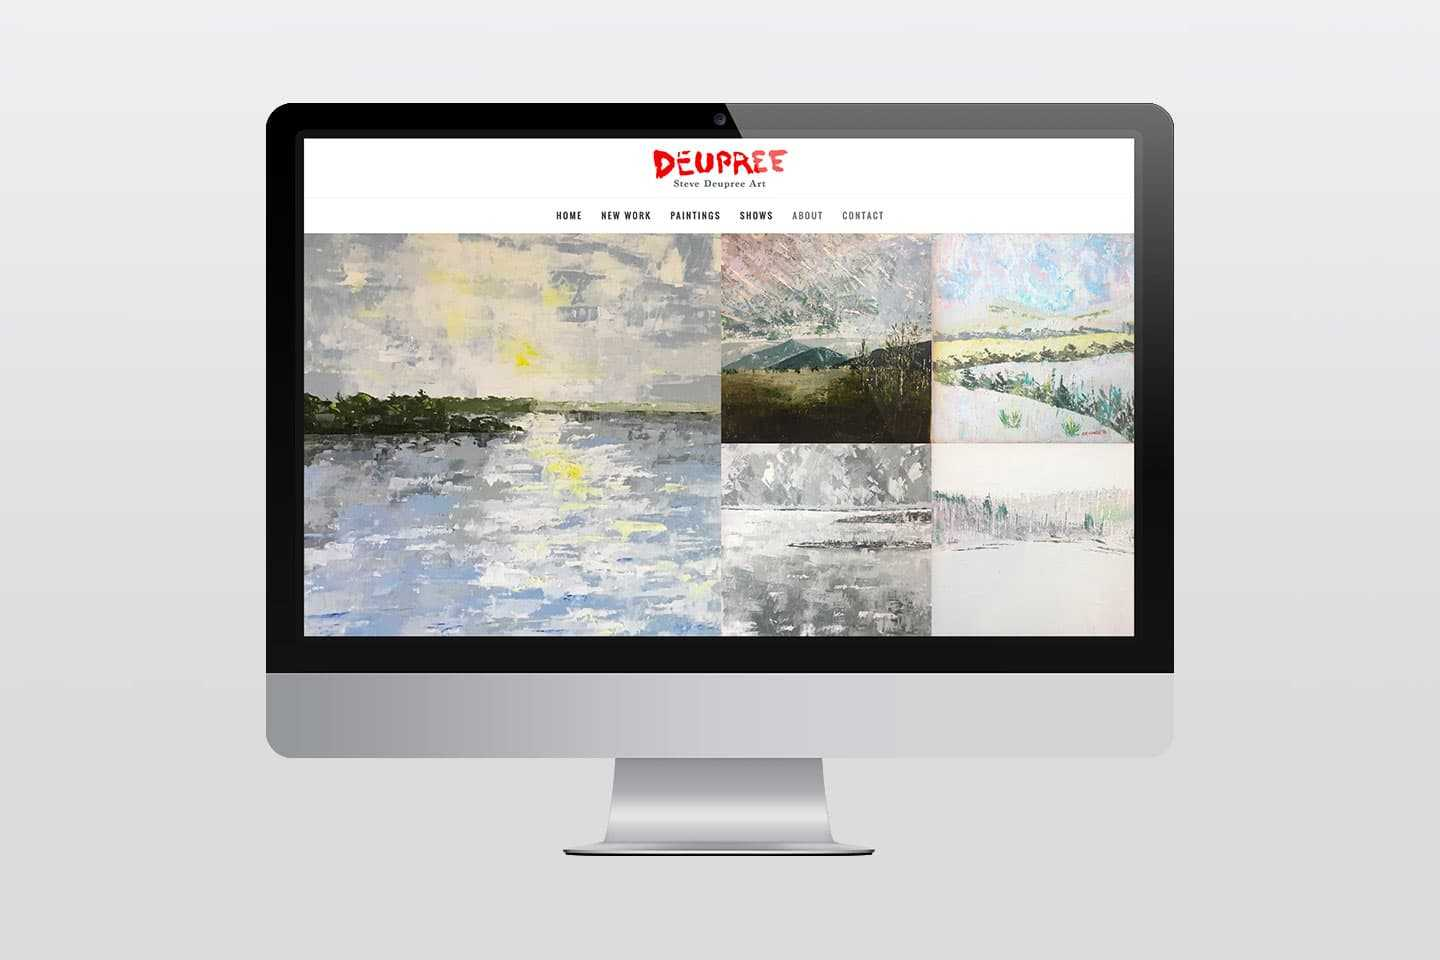 Steve Deupree Art Website